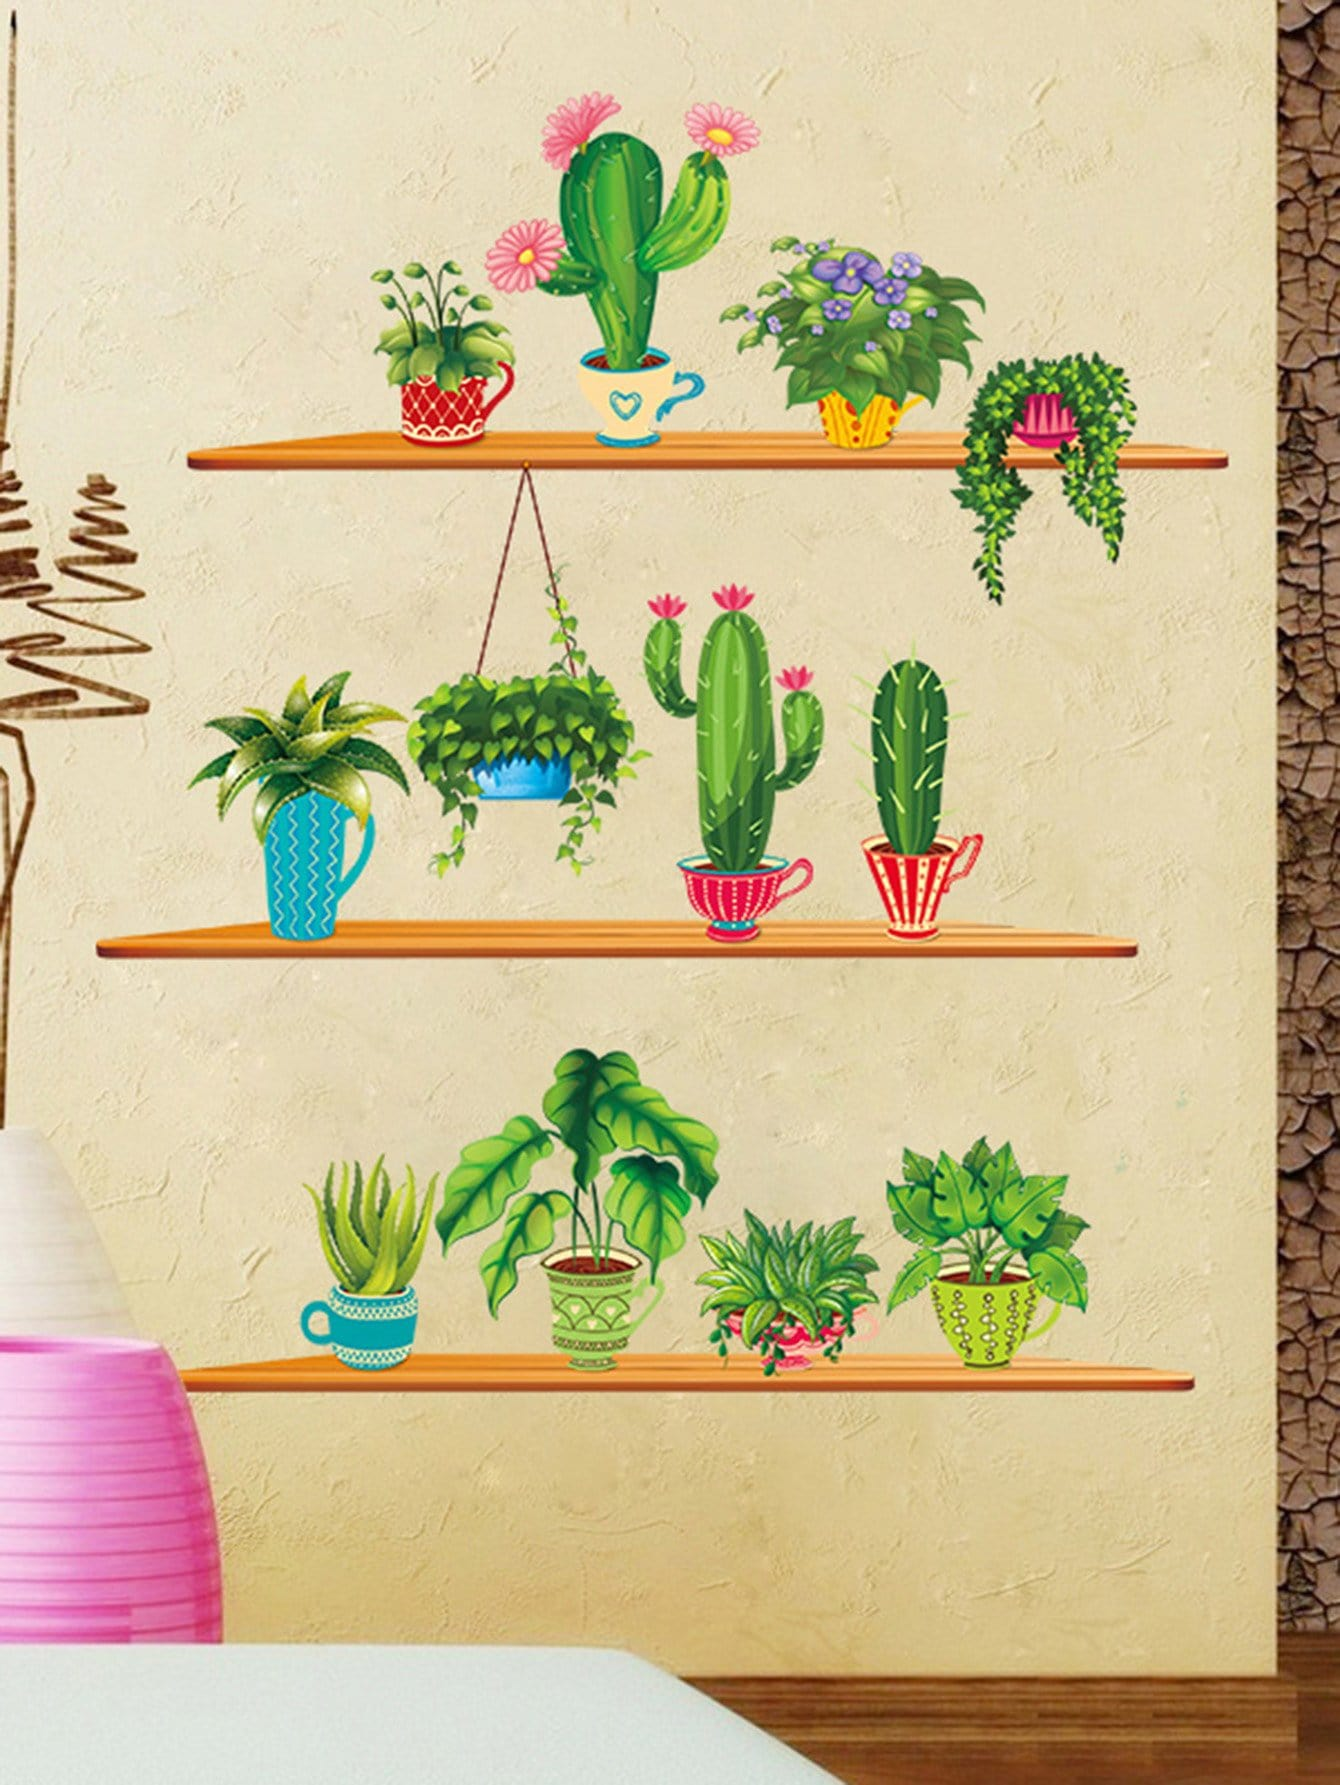 Cactus Wall Decal family wall quote removable wall stickers home decal art mural